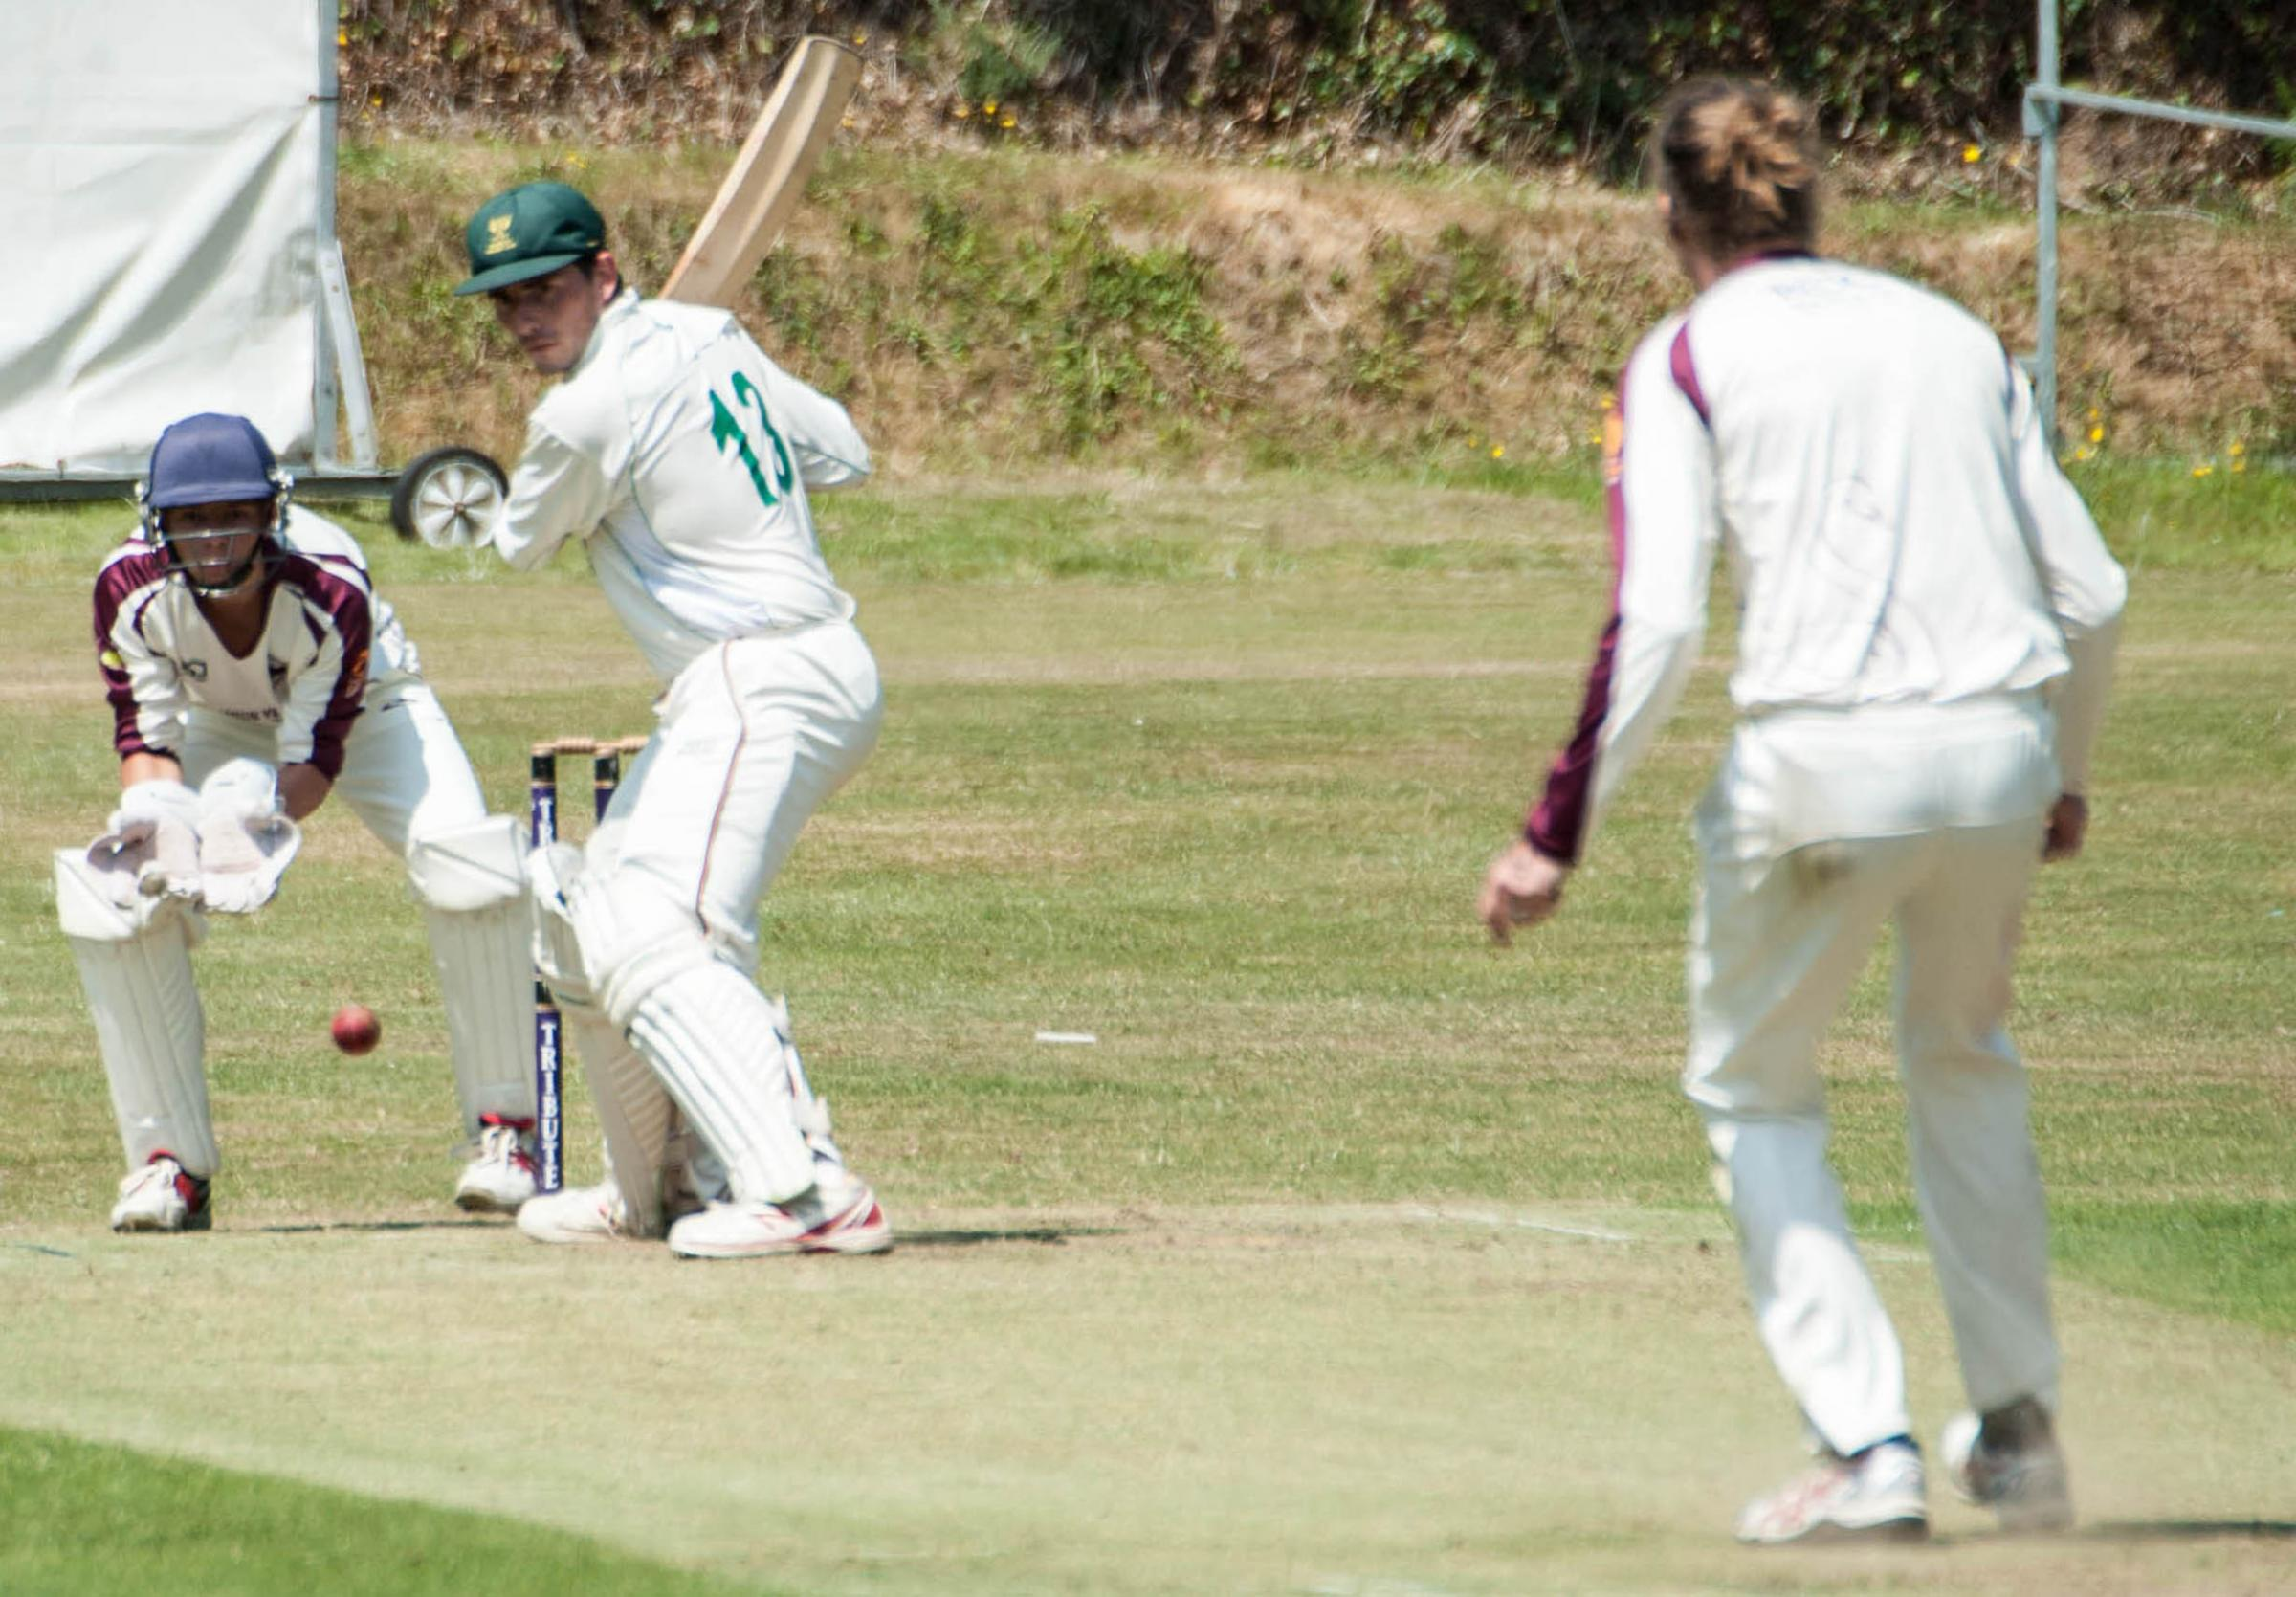 Falmouth batsman Scott Kellow (centre) scored 61 runs as his side beat St Just by one wicket in the Premier Division on Saturday. Picture by Colin Higgs